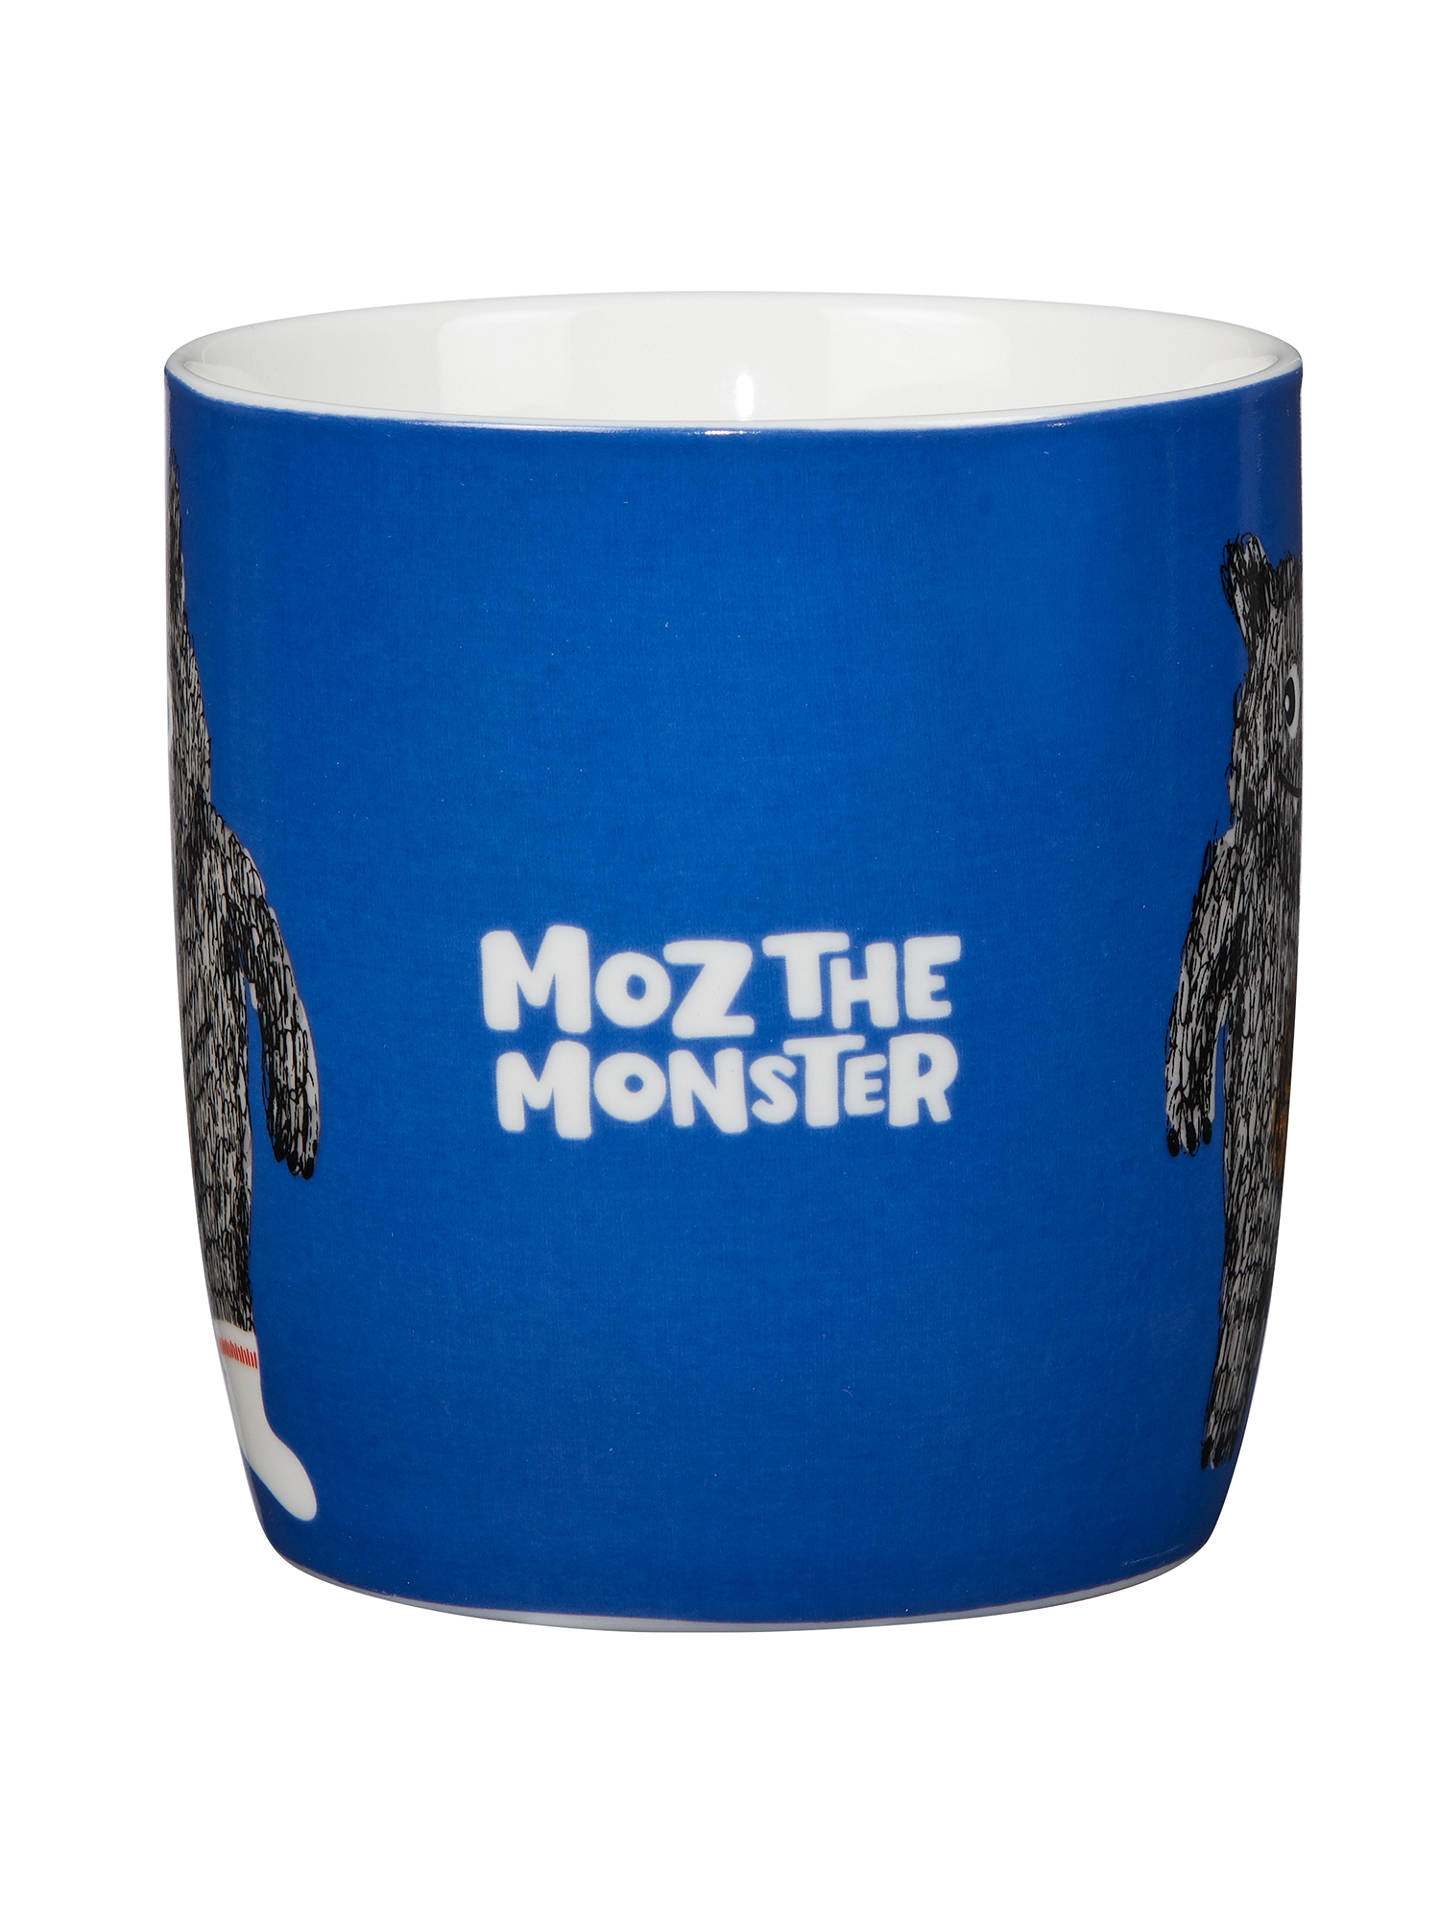 BuyJohn Lewis Moz The Monster China Mug, 350ml Online at johnlewis.com